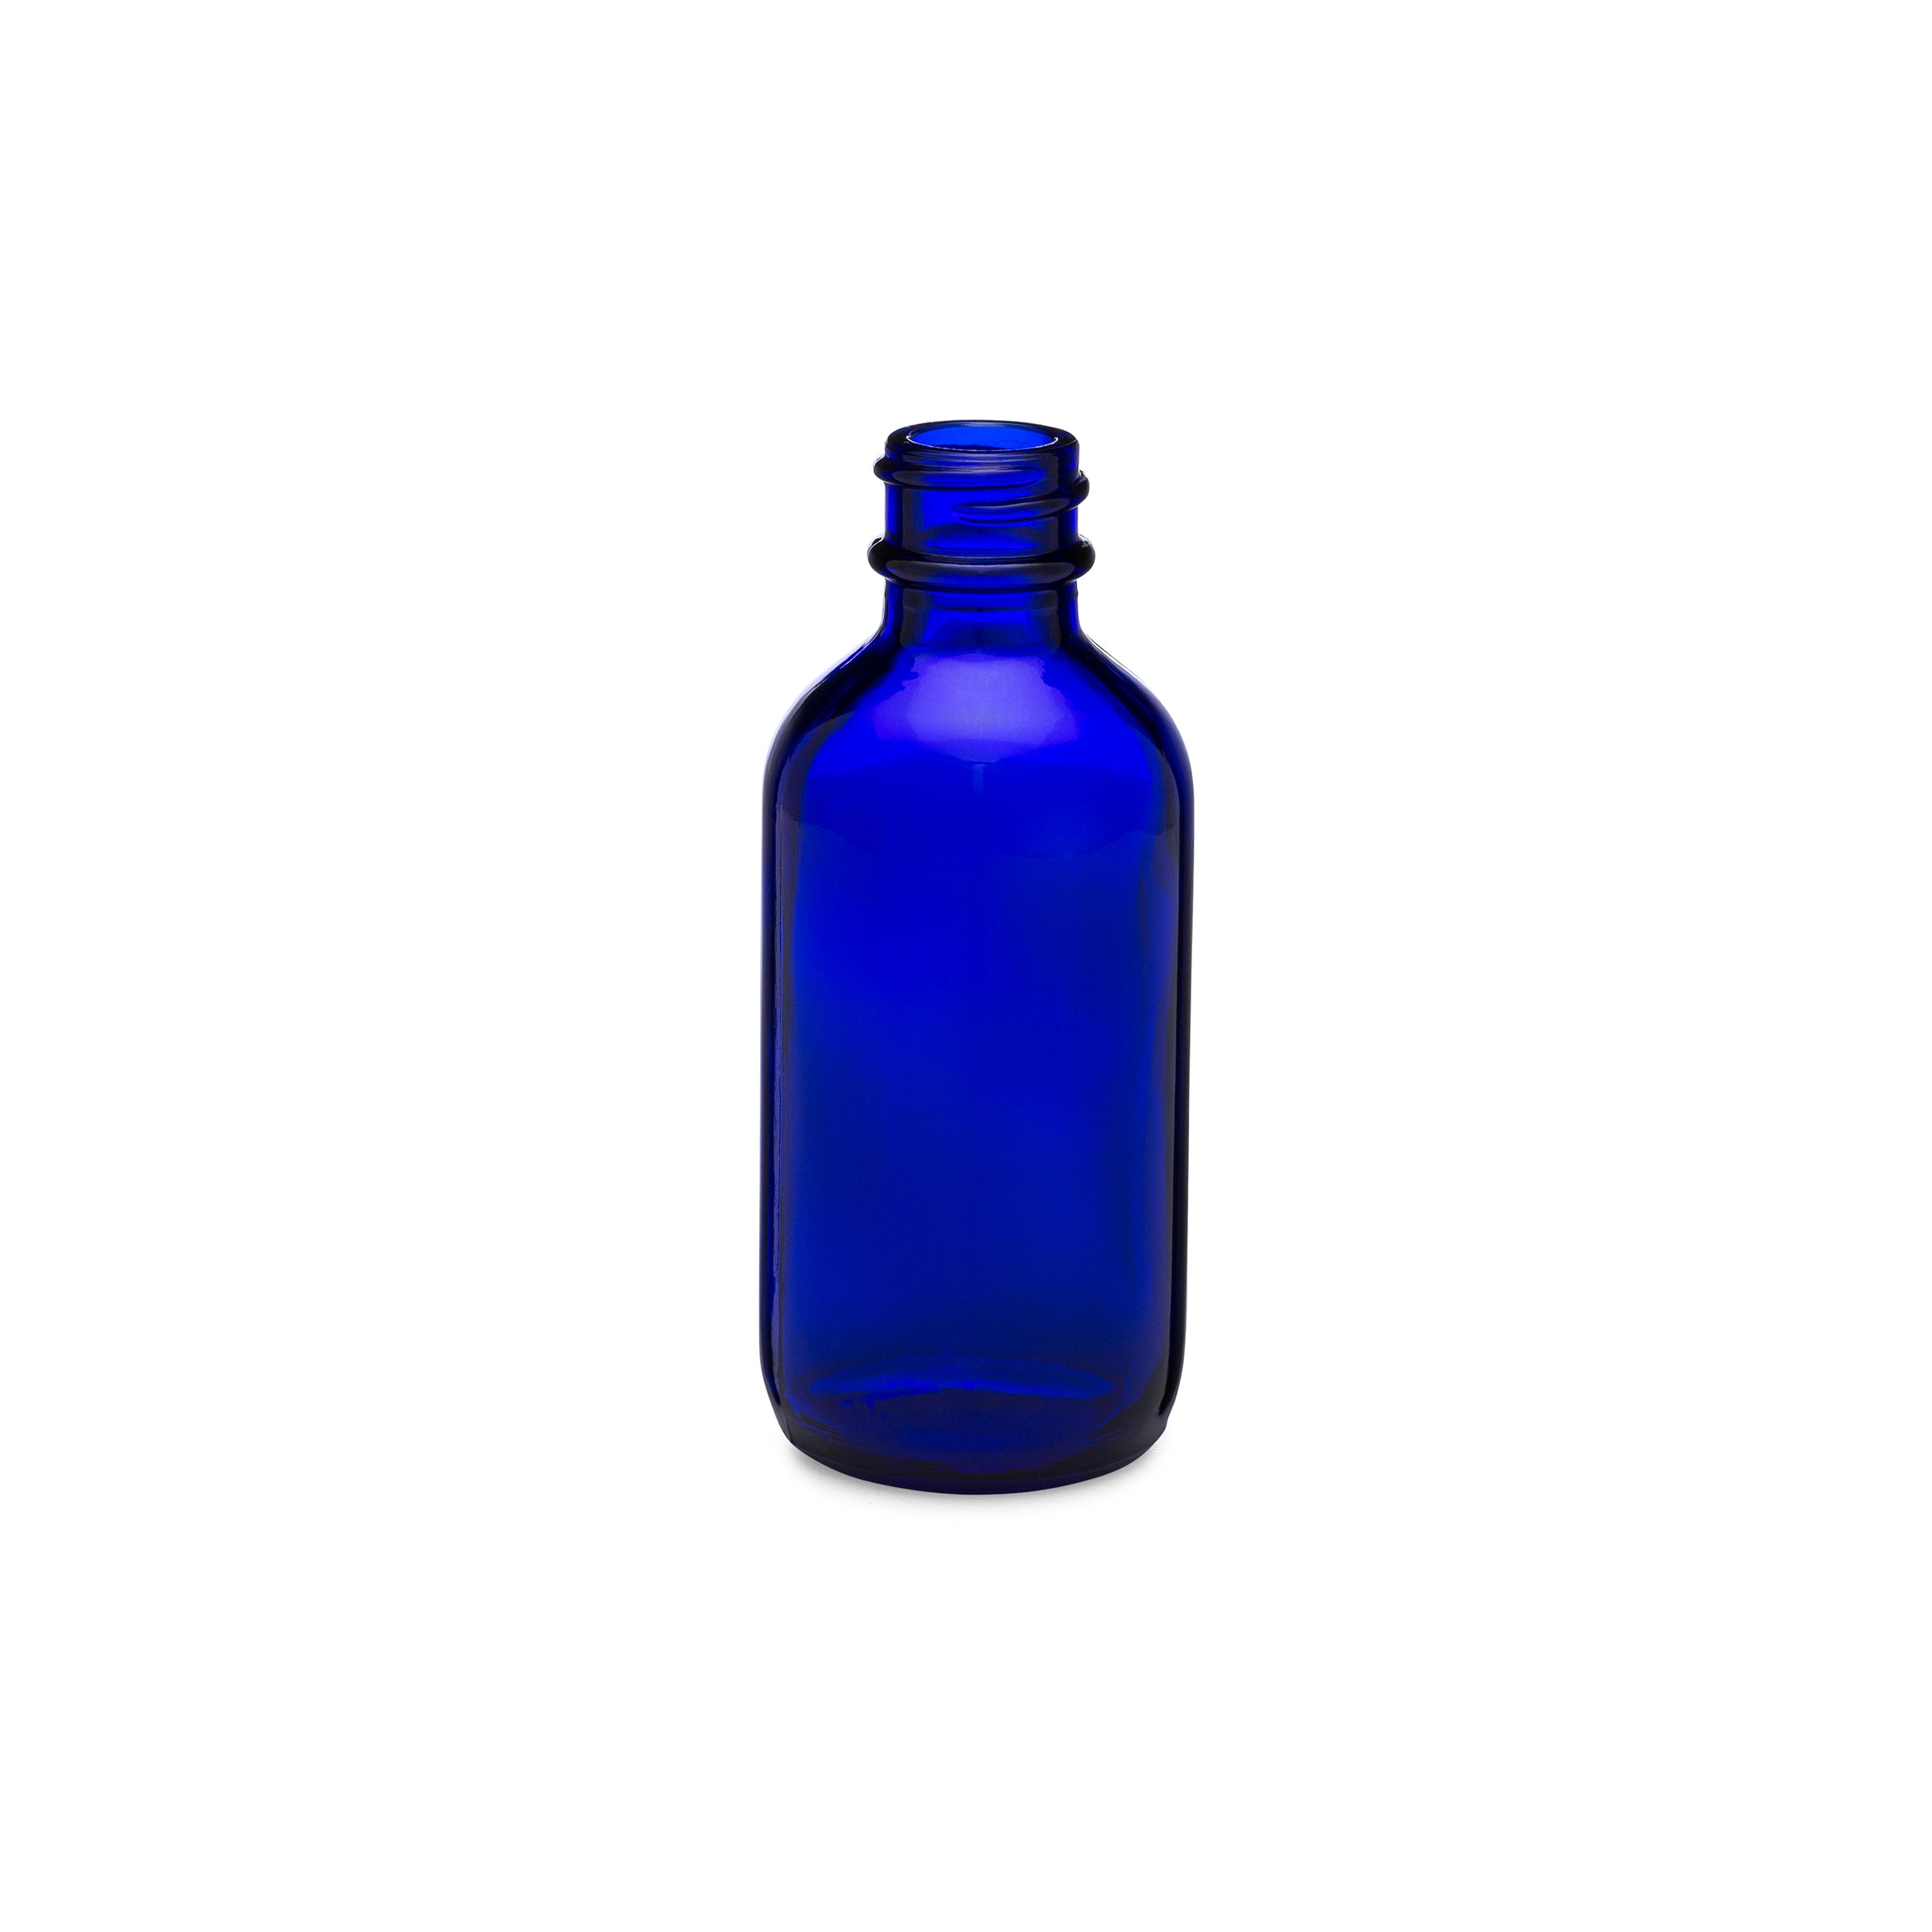 2oz/60ml Blue Boston Round Bottle